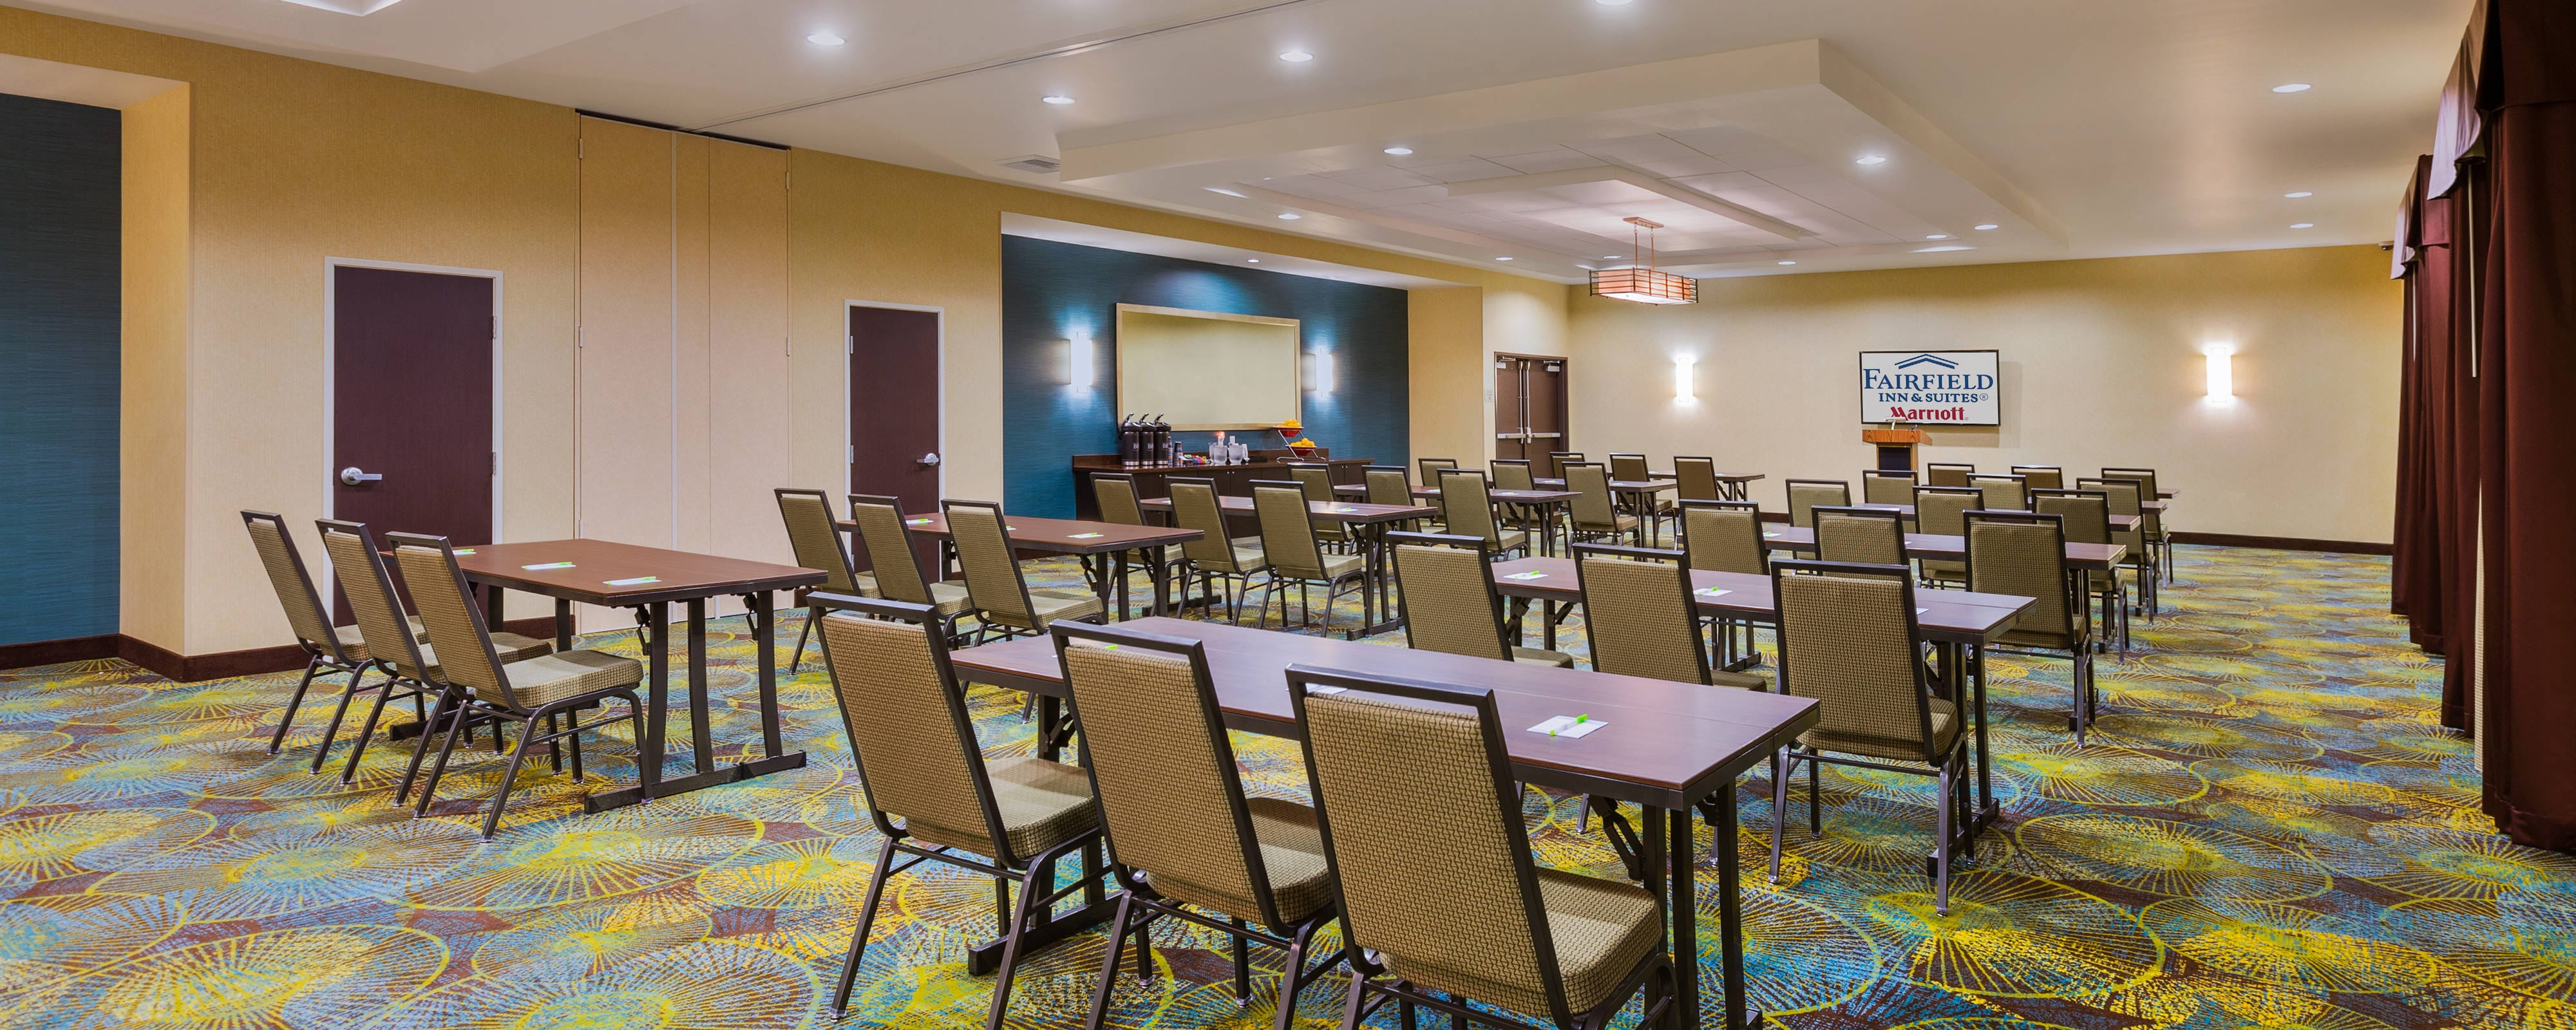 Fairfield Inn Norco Meeting Space